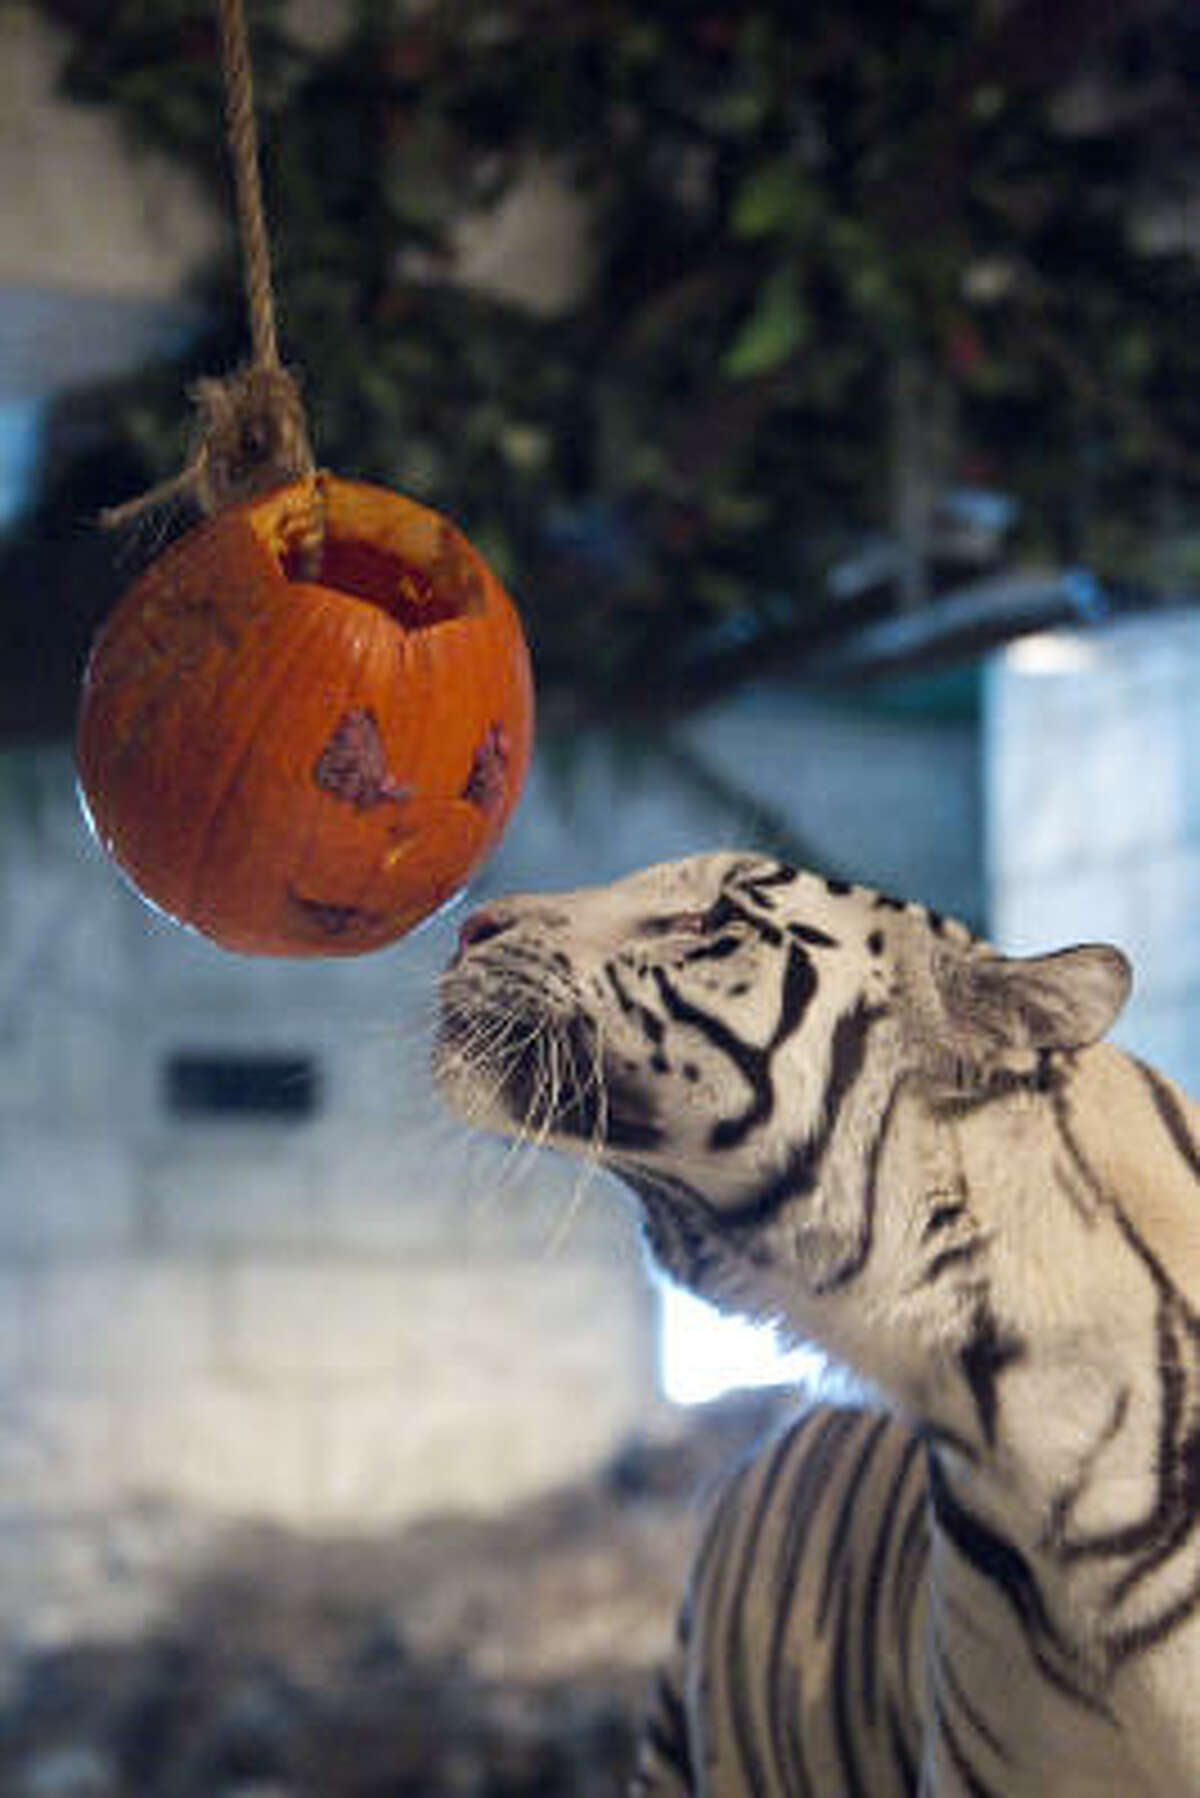 Reef a male white tiger looks to smash a pumpkin filled with meat during the Downtown Aquarium's annual Smash the Squash in Houston. The audience got learn about the enrichment programs the aquarium has for the tigers as they watched the tigers play with their jack-o-lanterns.